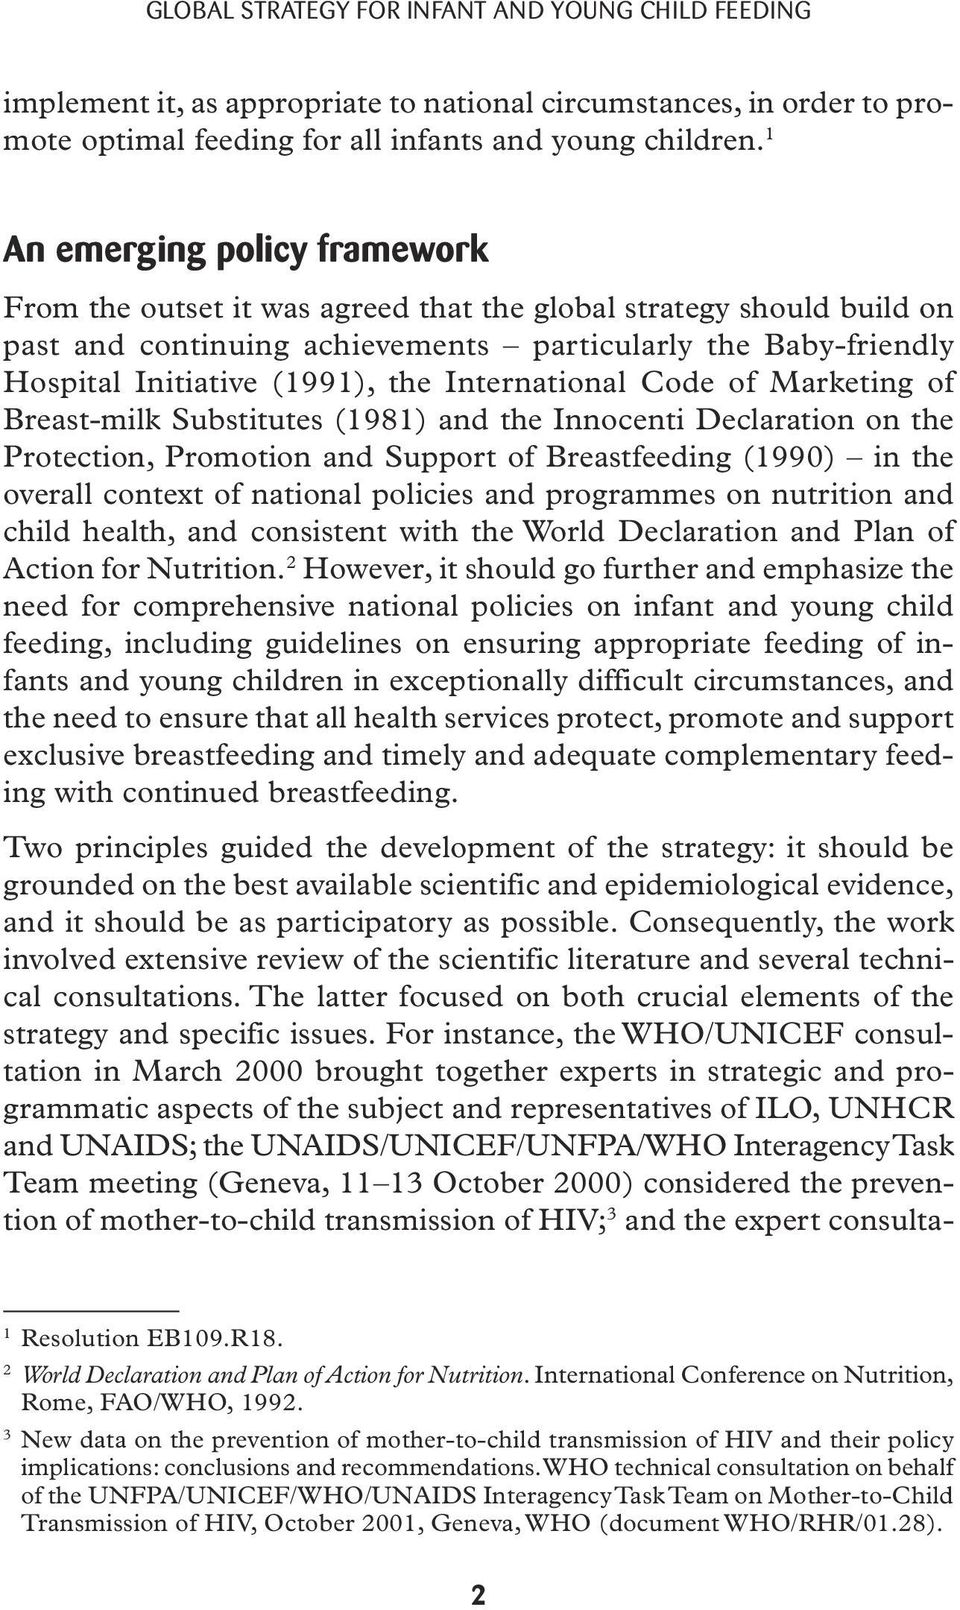 International Code of Marketing of Breast-milk Substitutes (1981) and the Innocenti Declaration on the Protection, Promotion and Support of Breastfeeding (1990) in the overall context of national